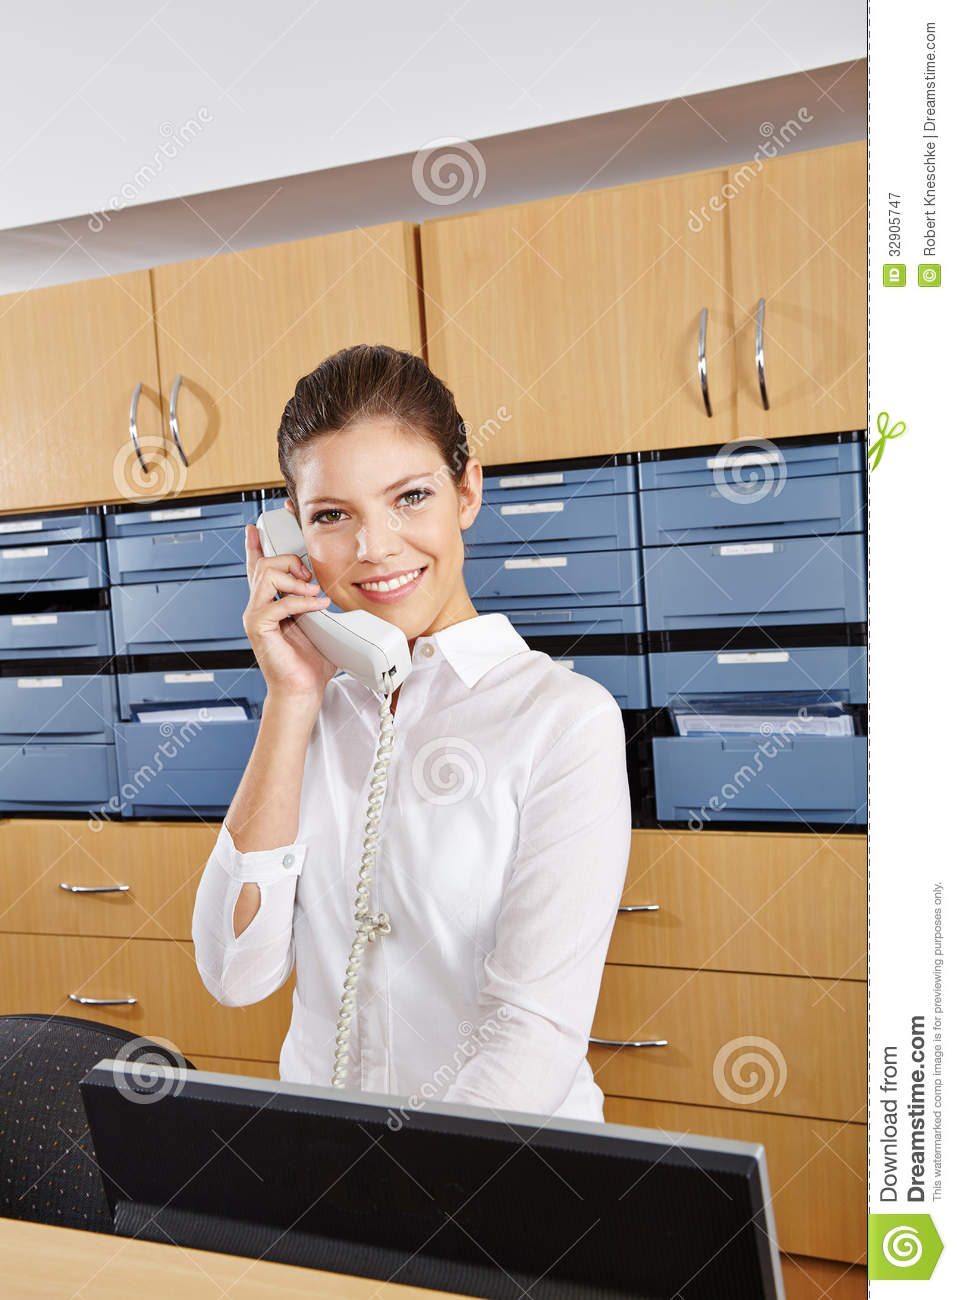 Receptionist In Hospital Taking Call Royalty Free Stock Photography ...